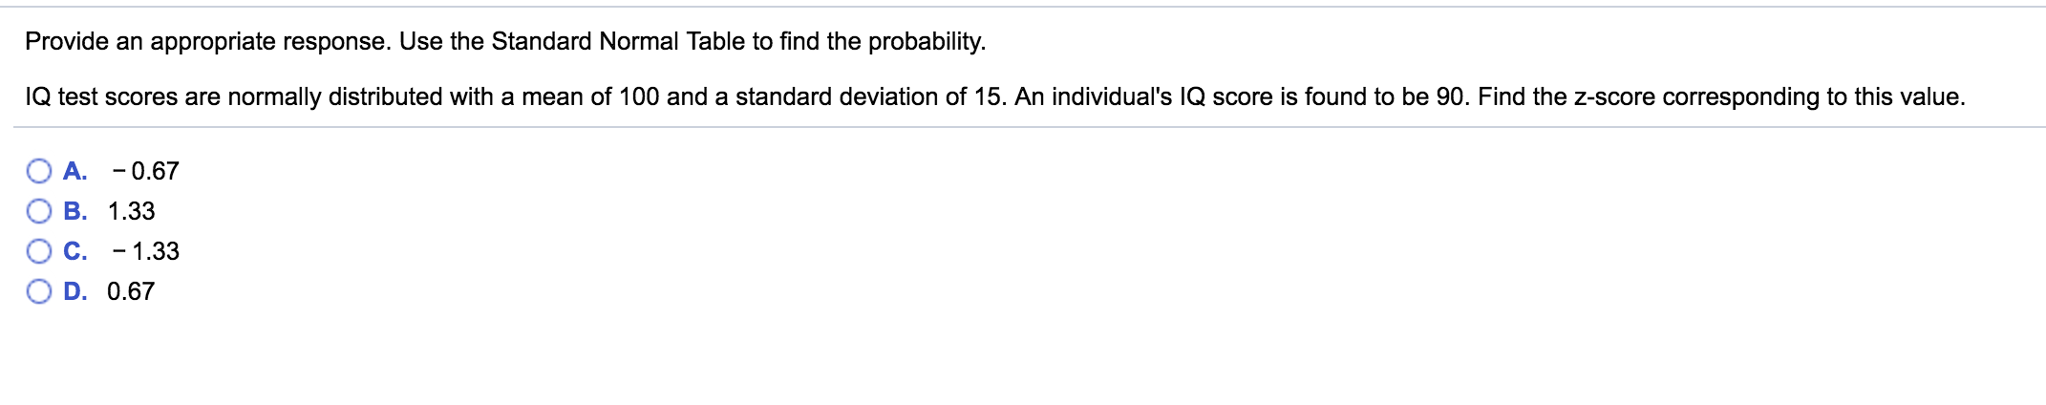 Use The Standard Normal Table To Find The Probability Iq Test Scores Are  Normally Distributed With A Mean Of 100 And A Standard Deviation Of 15